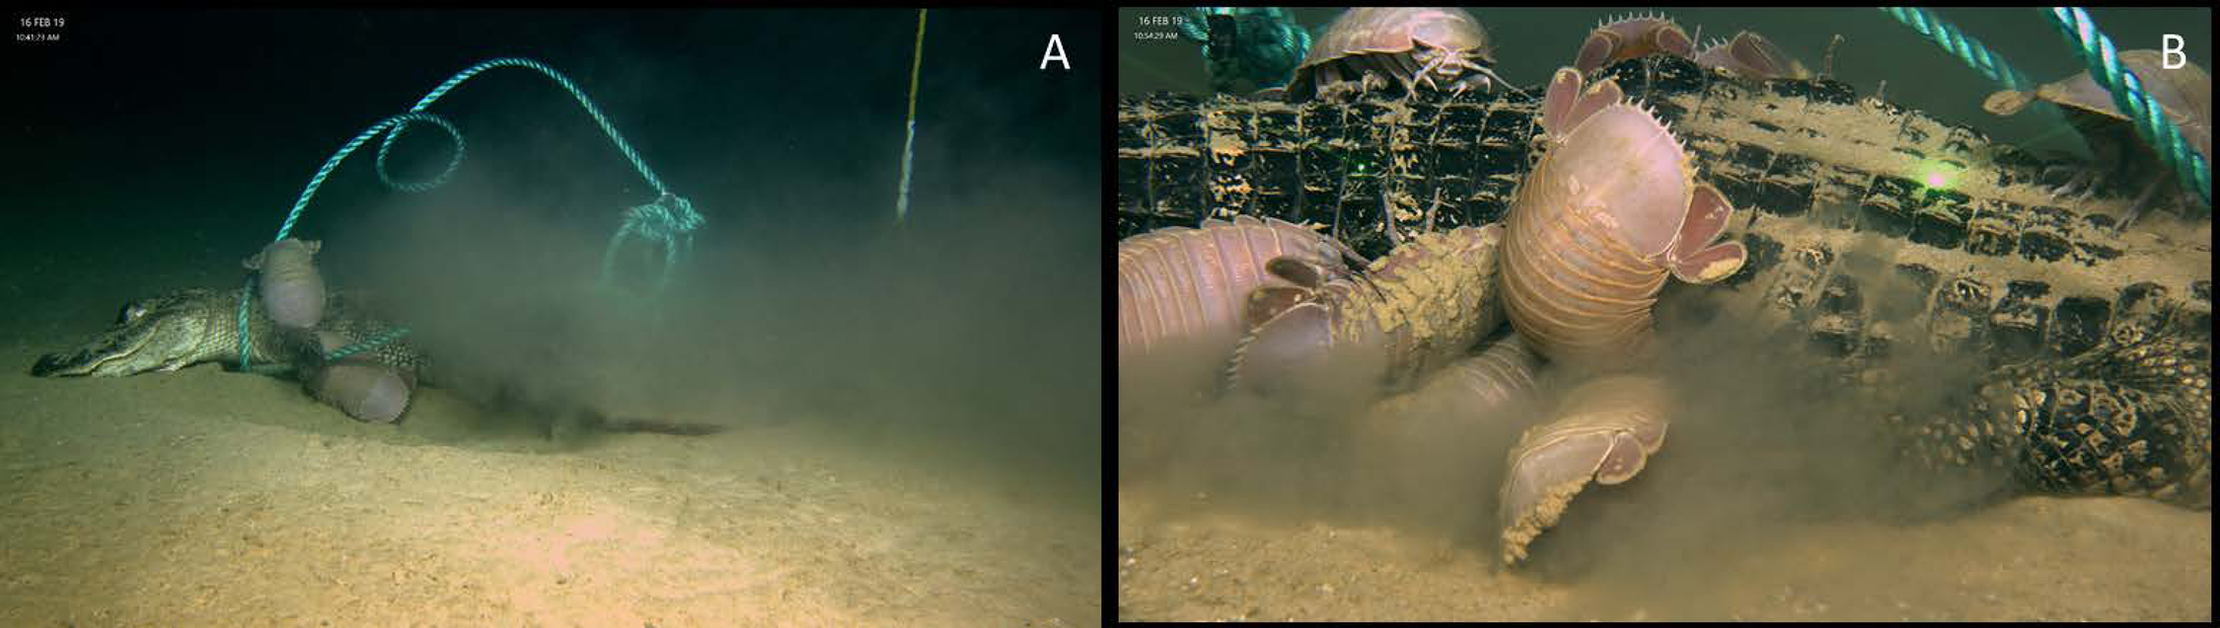 Sinking Alligator Carcasses into the Deep Ocean to See What Eats Them